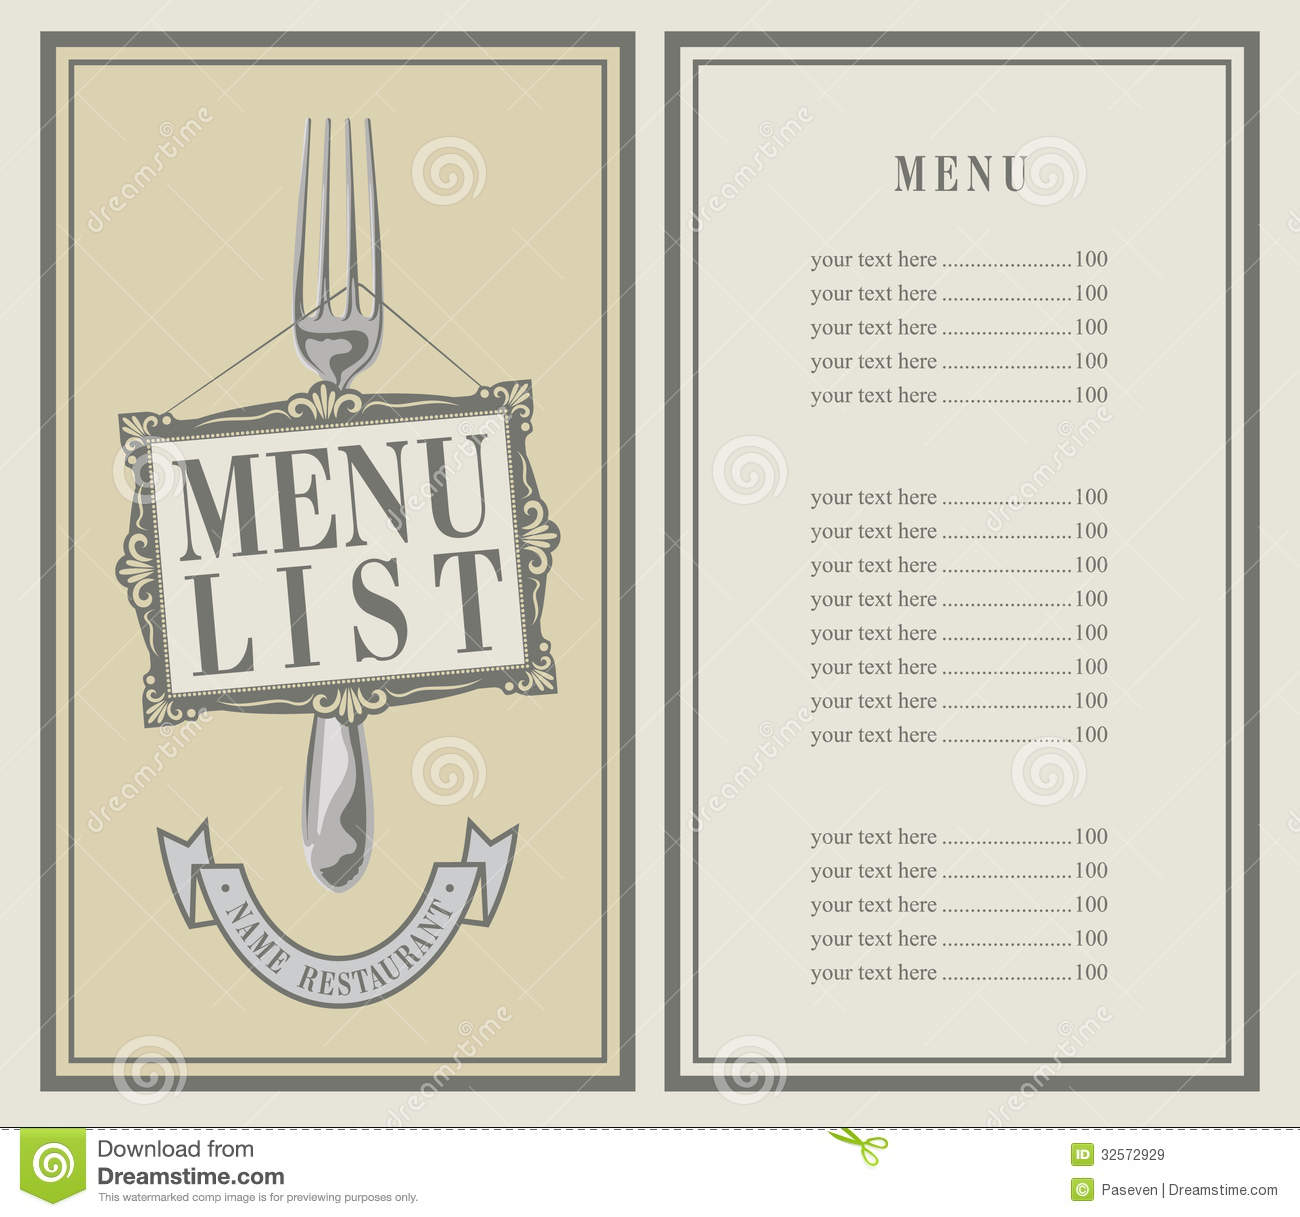 Menu List Royalty Free Stock Images Image 32572929 : menu list fork picture frame 32572929 from www.dreamstime.com size 1300 x 1217 jpeg 136kB